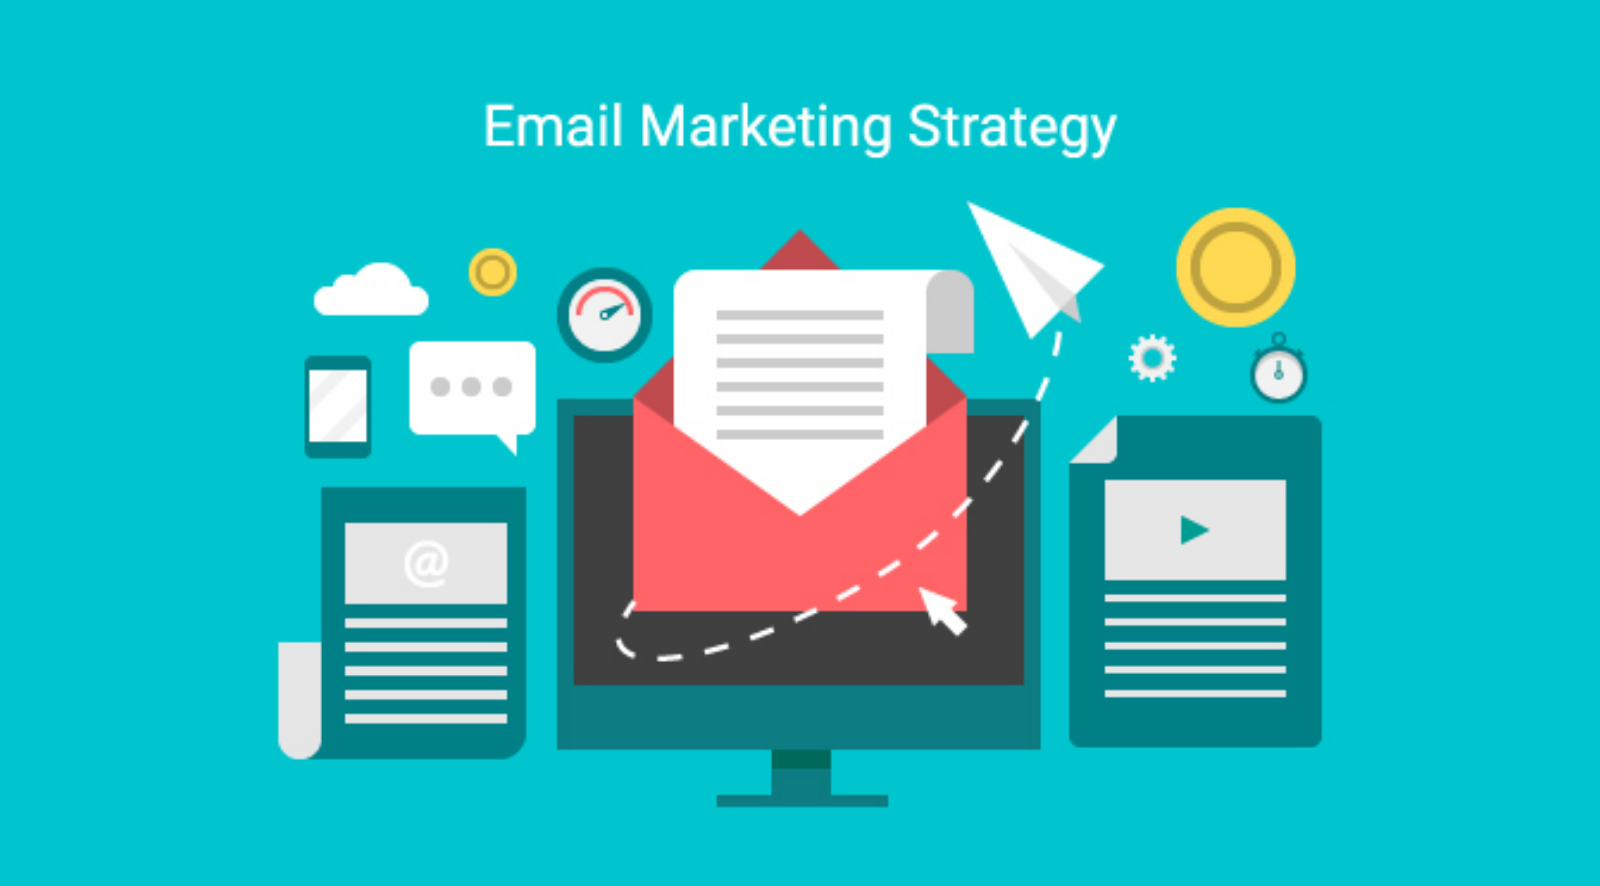 Computer and Envelope   How To Create An Email Marketing Strategy That Drives Results